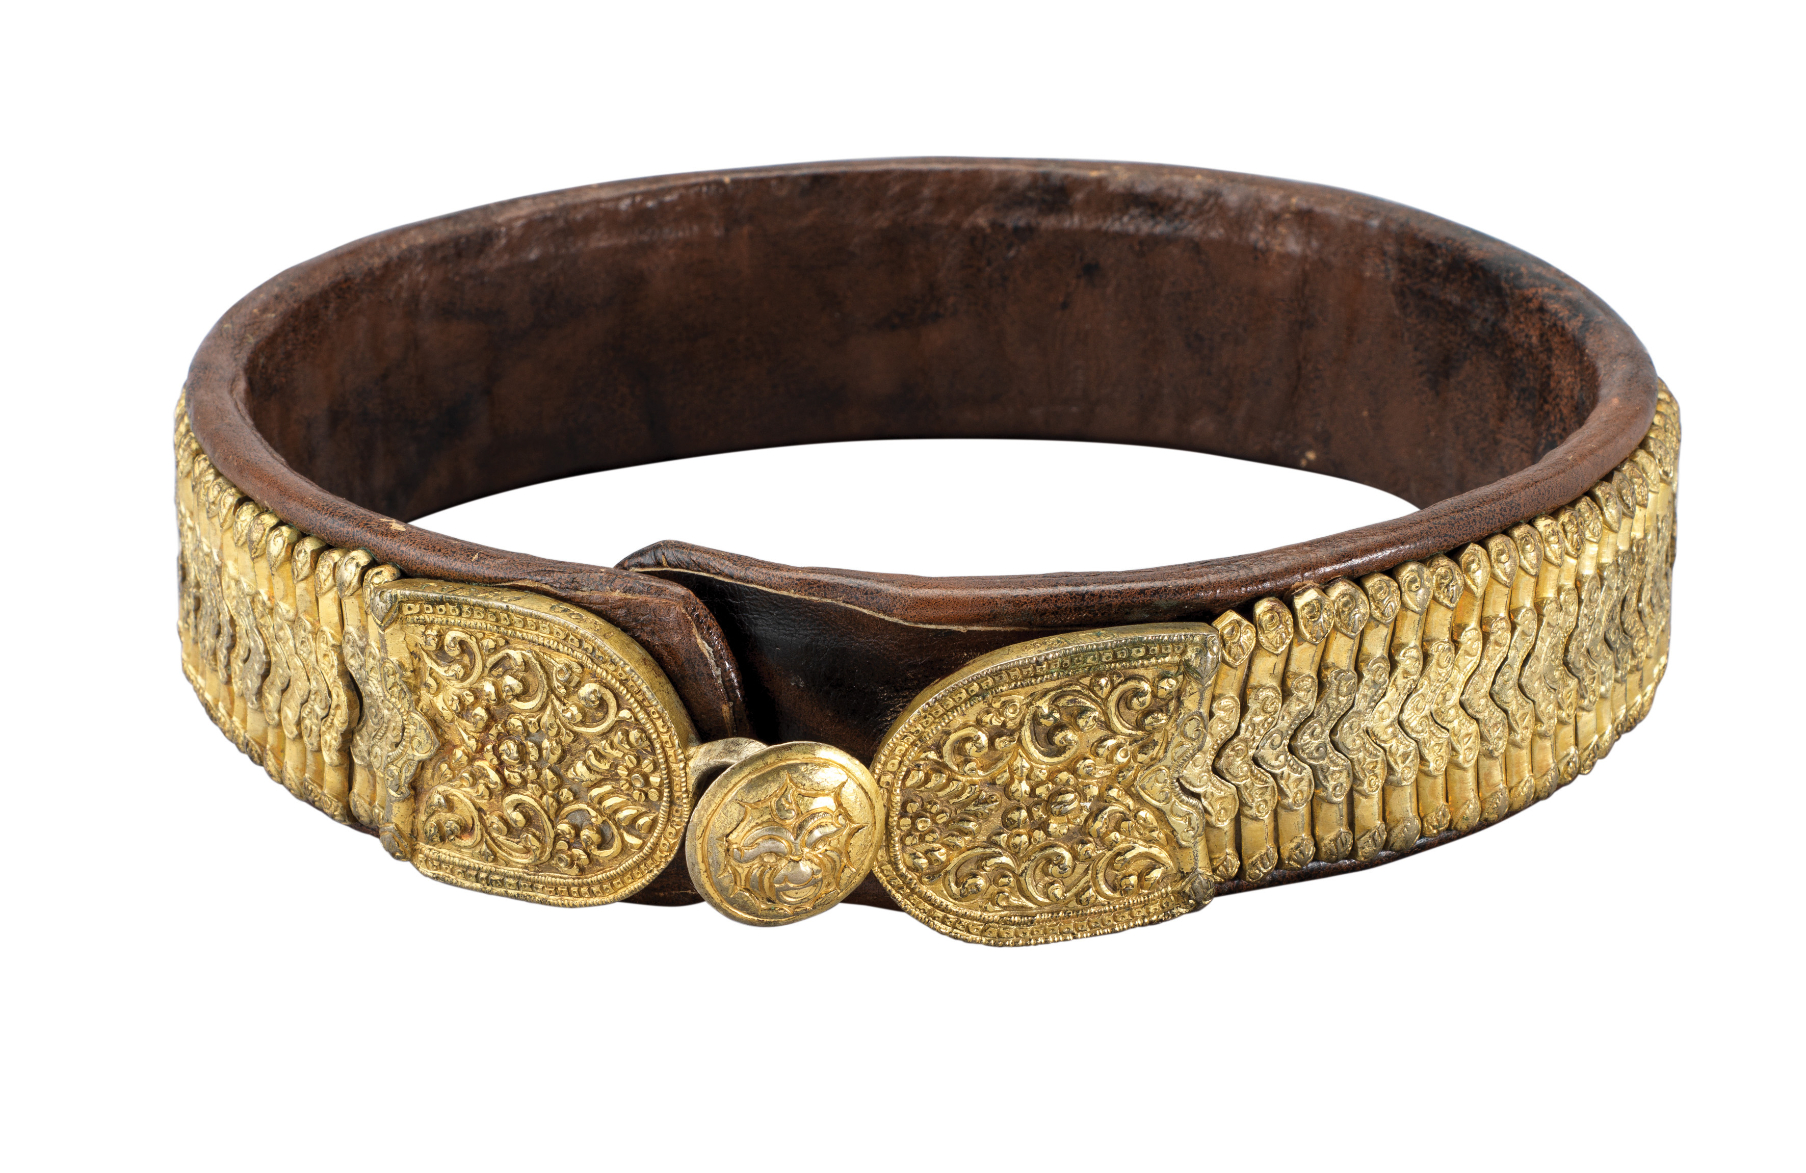 Ⓦ AN OTTOMAN BALKAN SILVER-GILT MOUNTED BELT^ LATE 18TH/EARLY 19TH CENTURY